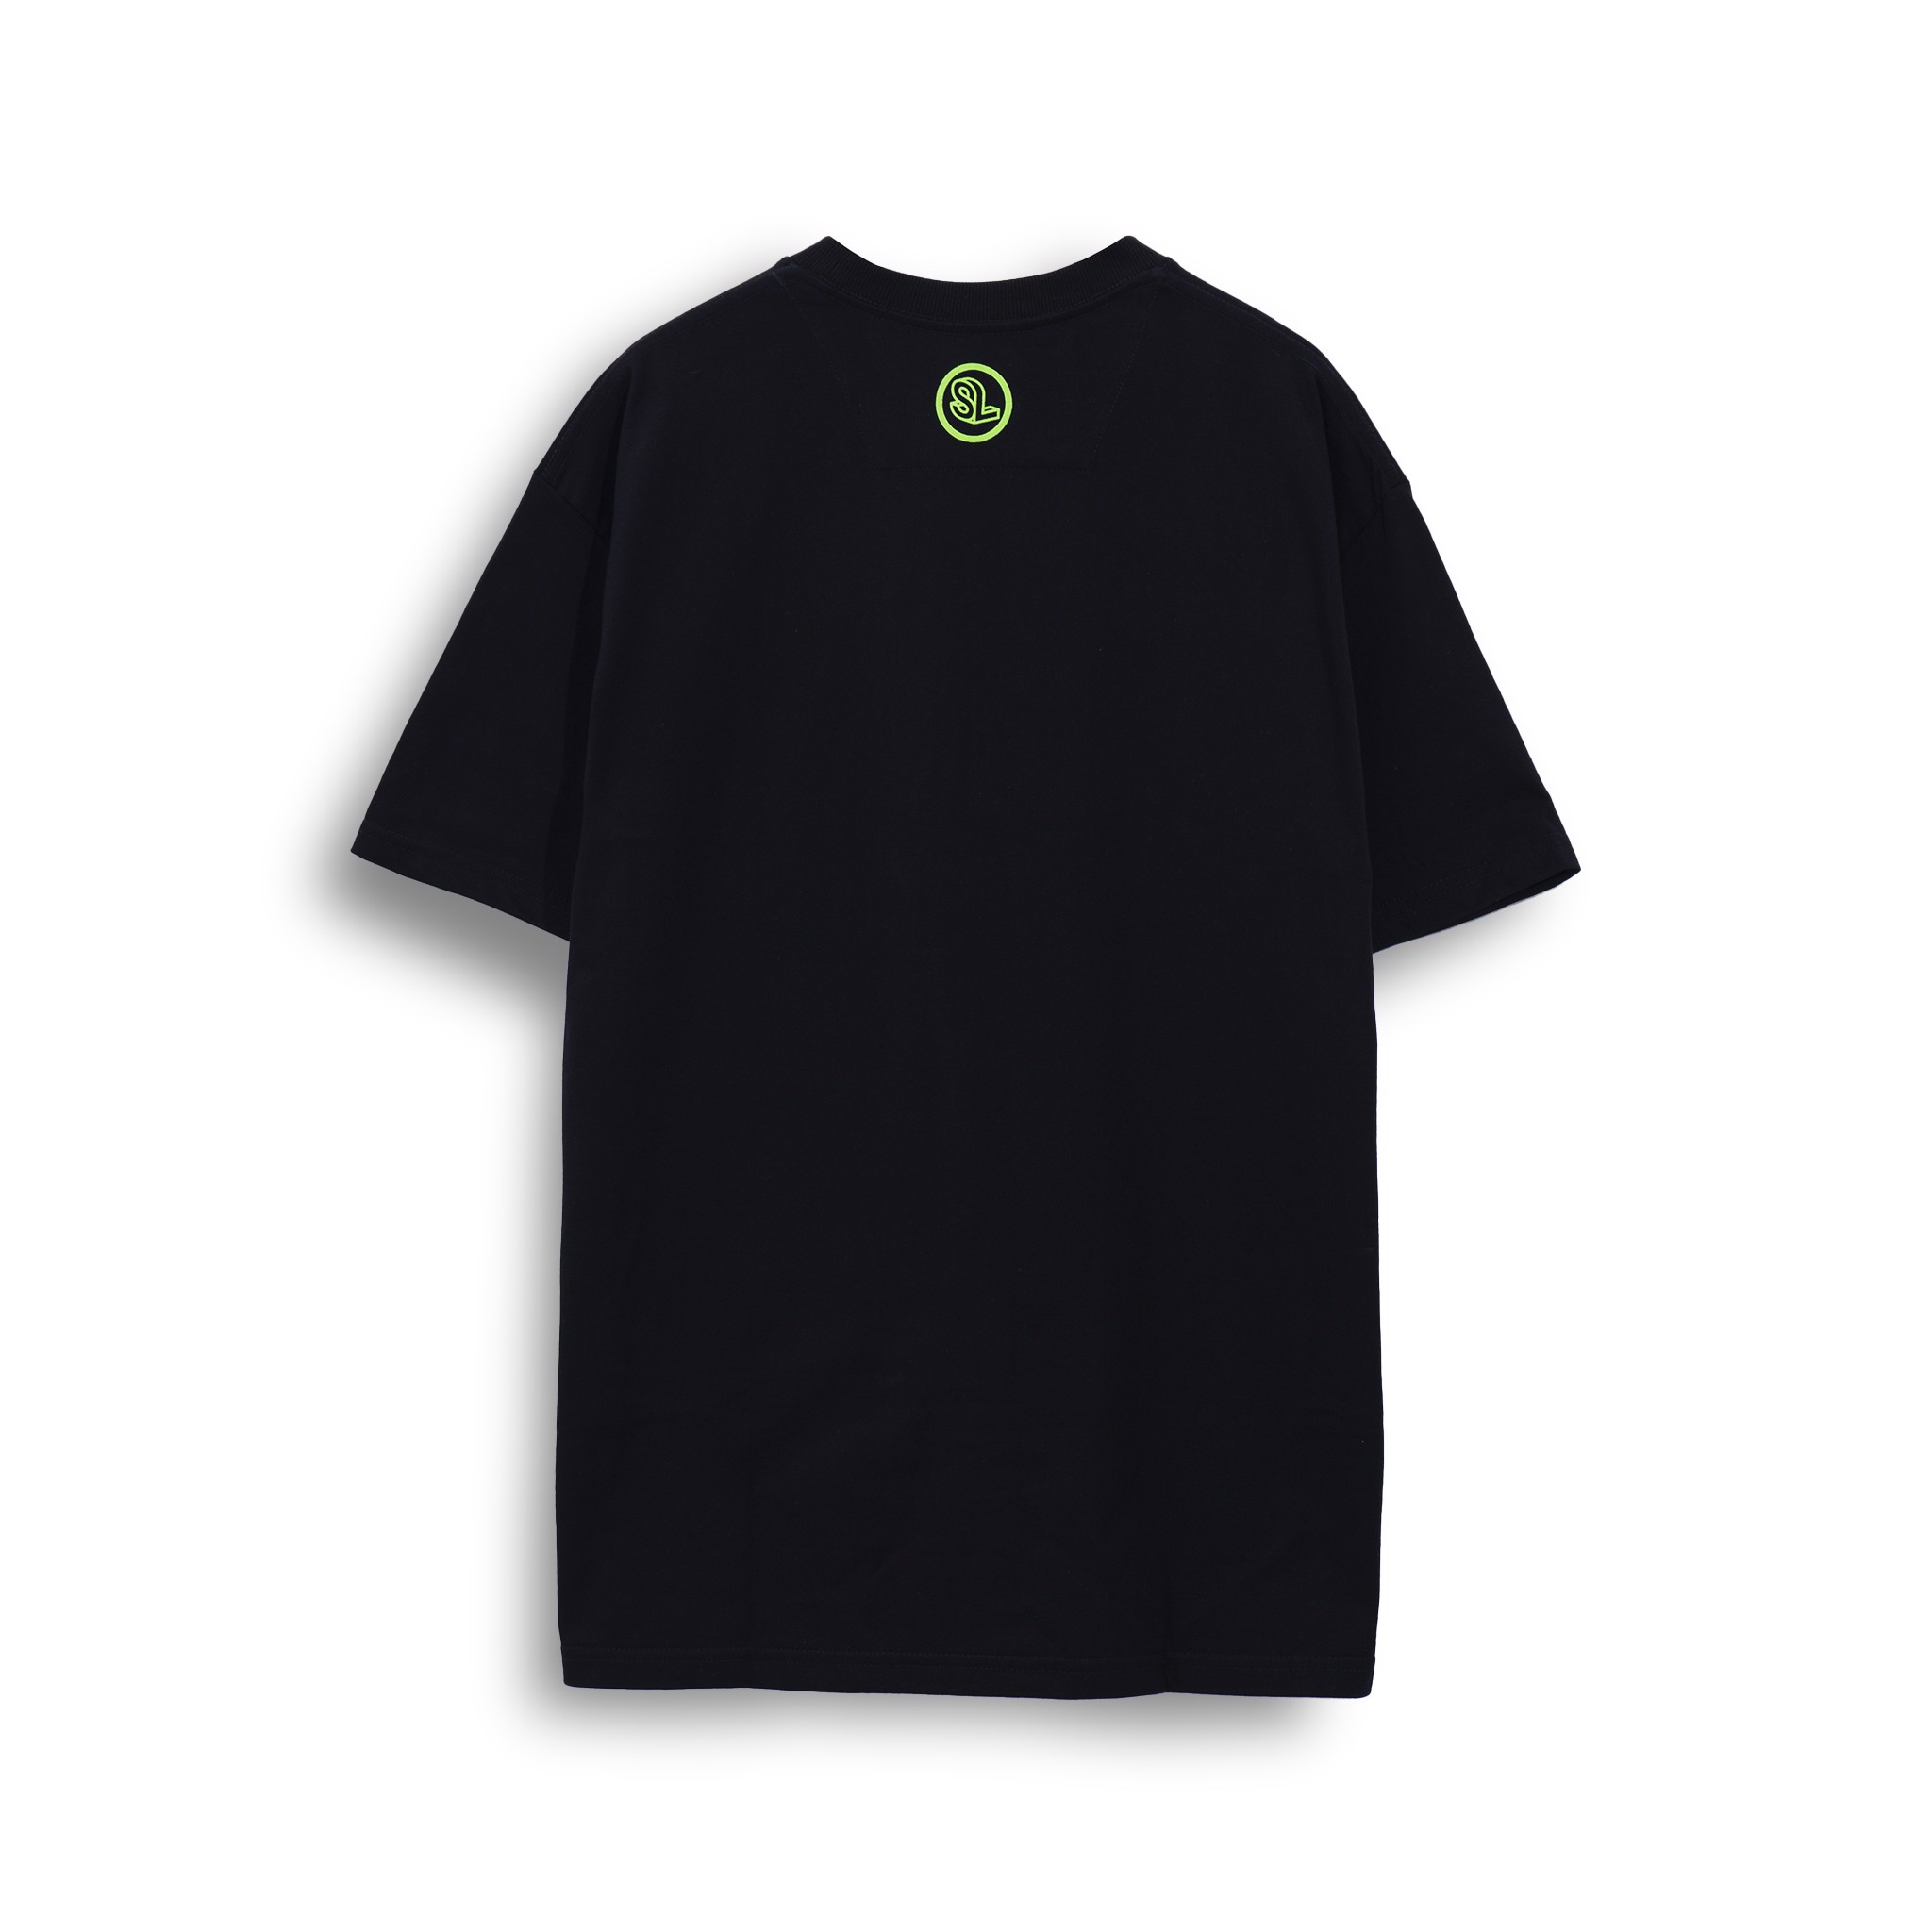 The Earth T - shirt